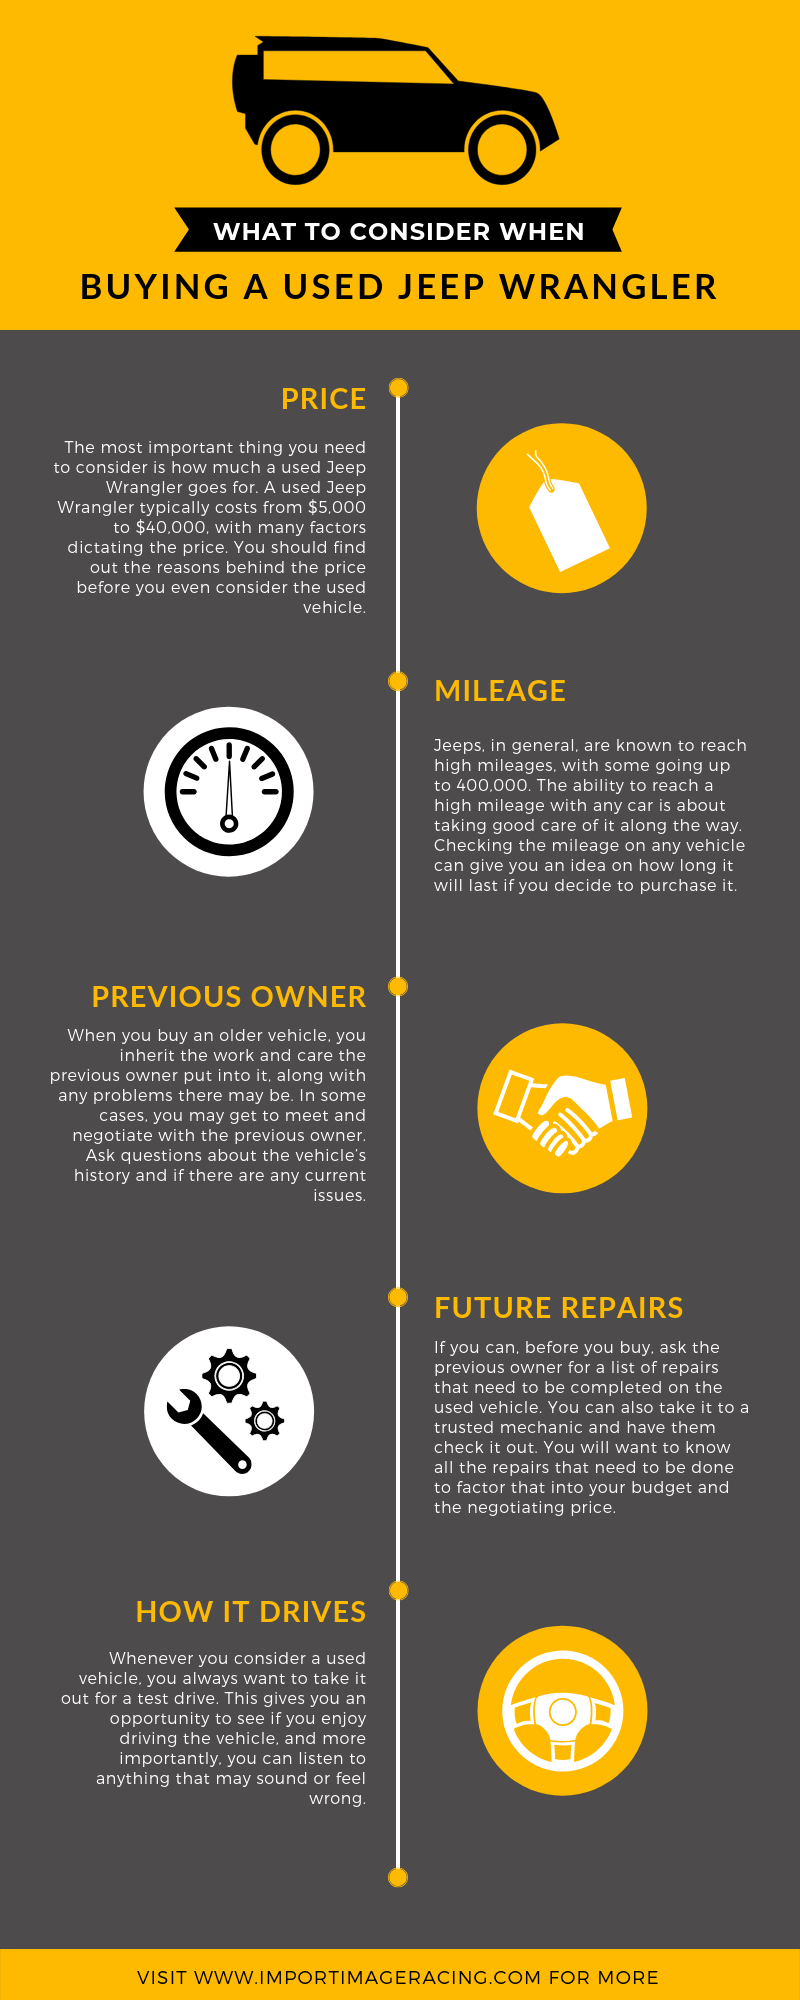 What to Consider When Buying A Used Jeep Wrangler infographic